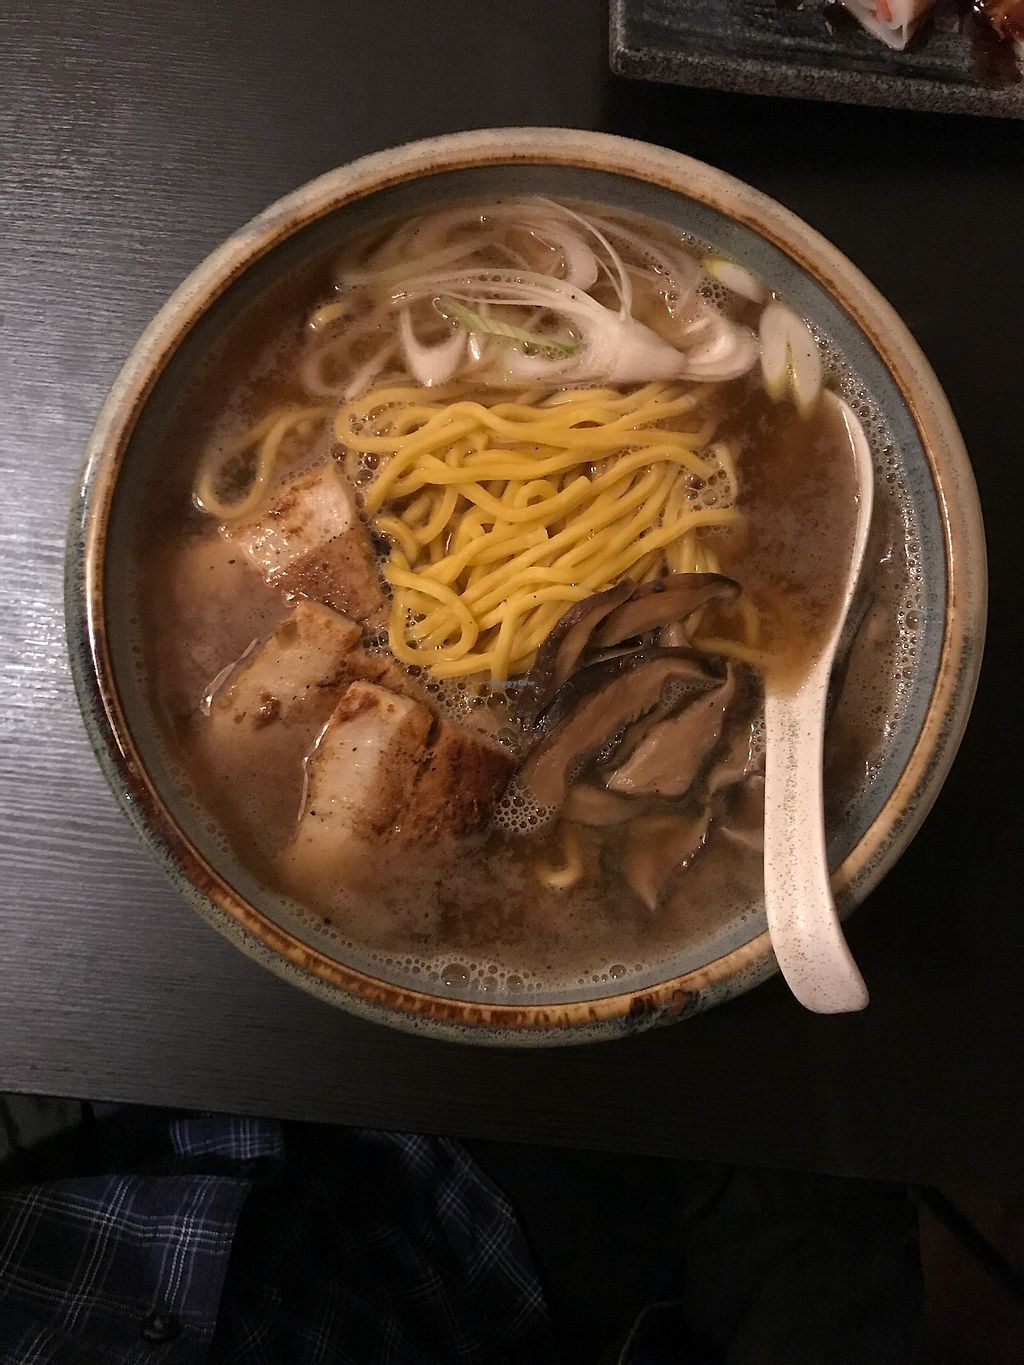 "Photo of Ichiza Kitchen & Tea House  by <a href=""/members/profile/NSmoke"">NSmoke</a> <br/>Ramen <br/> February 6, 2018  - <a href='/contact/abuse/image/95823/355527'>Report</a>"